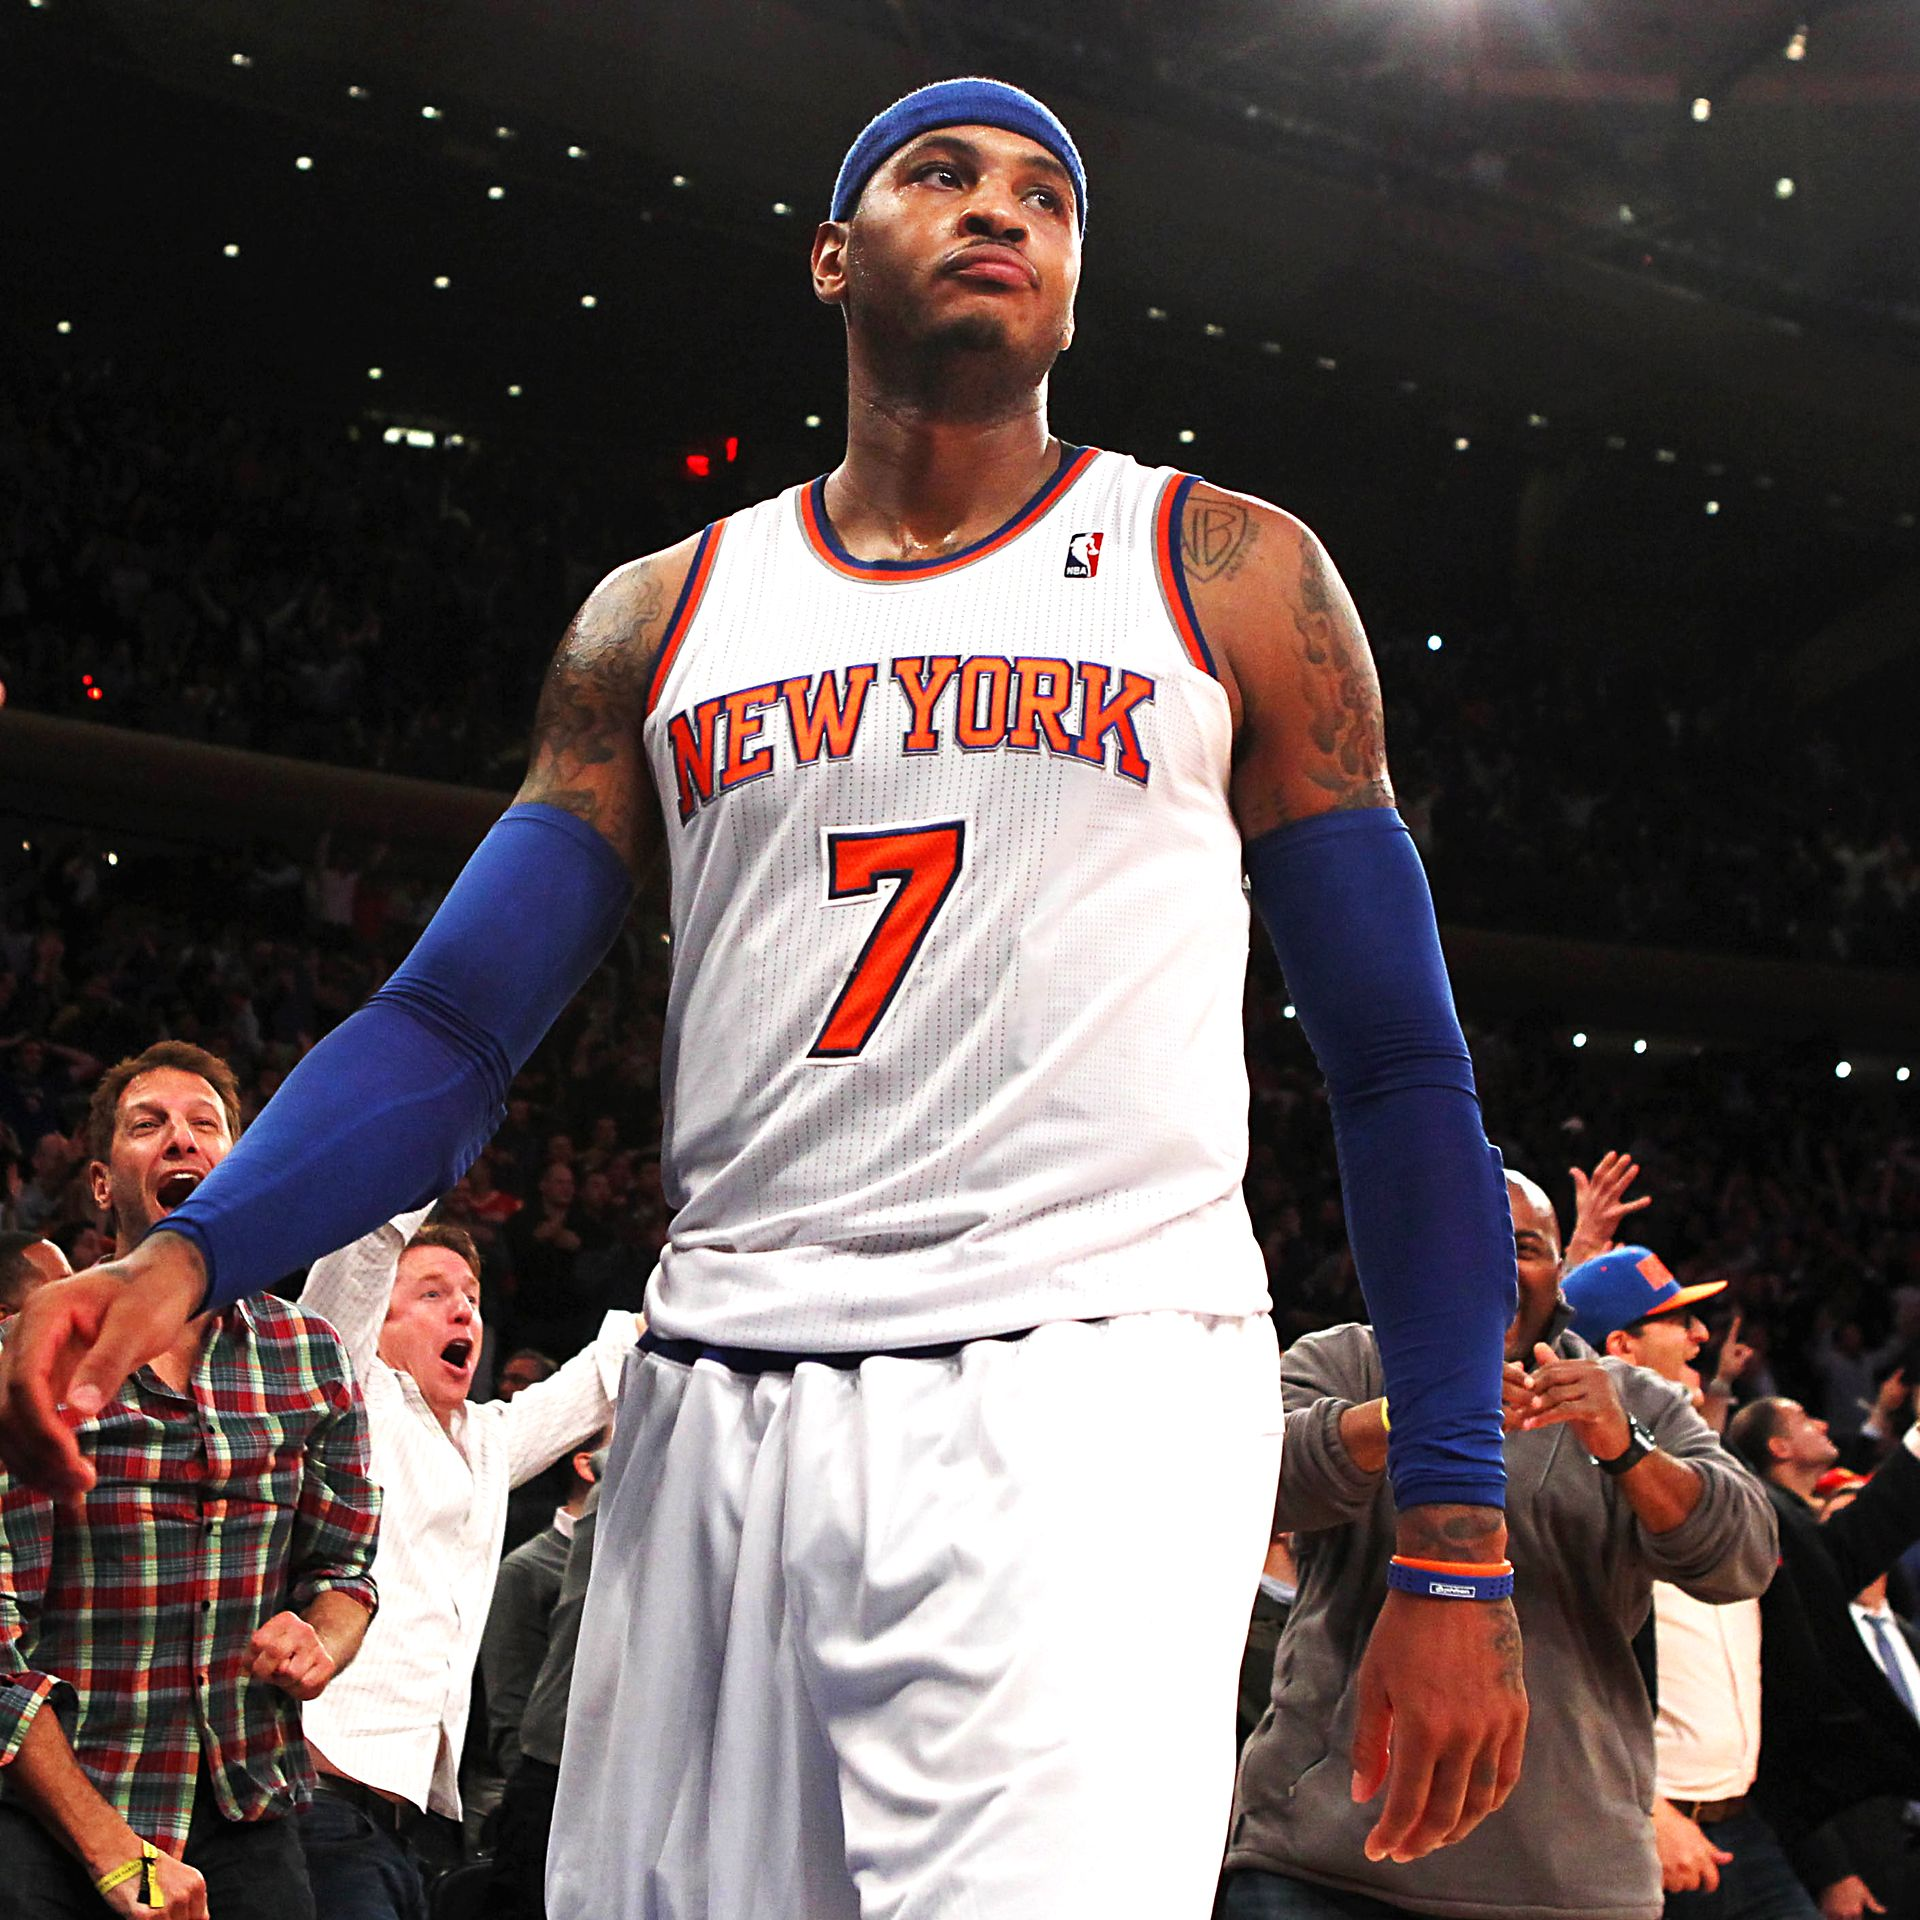 Carmelo Anthony Pistons Jersey: Could Bulls Be Trade Fit For Knicks' Carmelo Anthony?